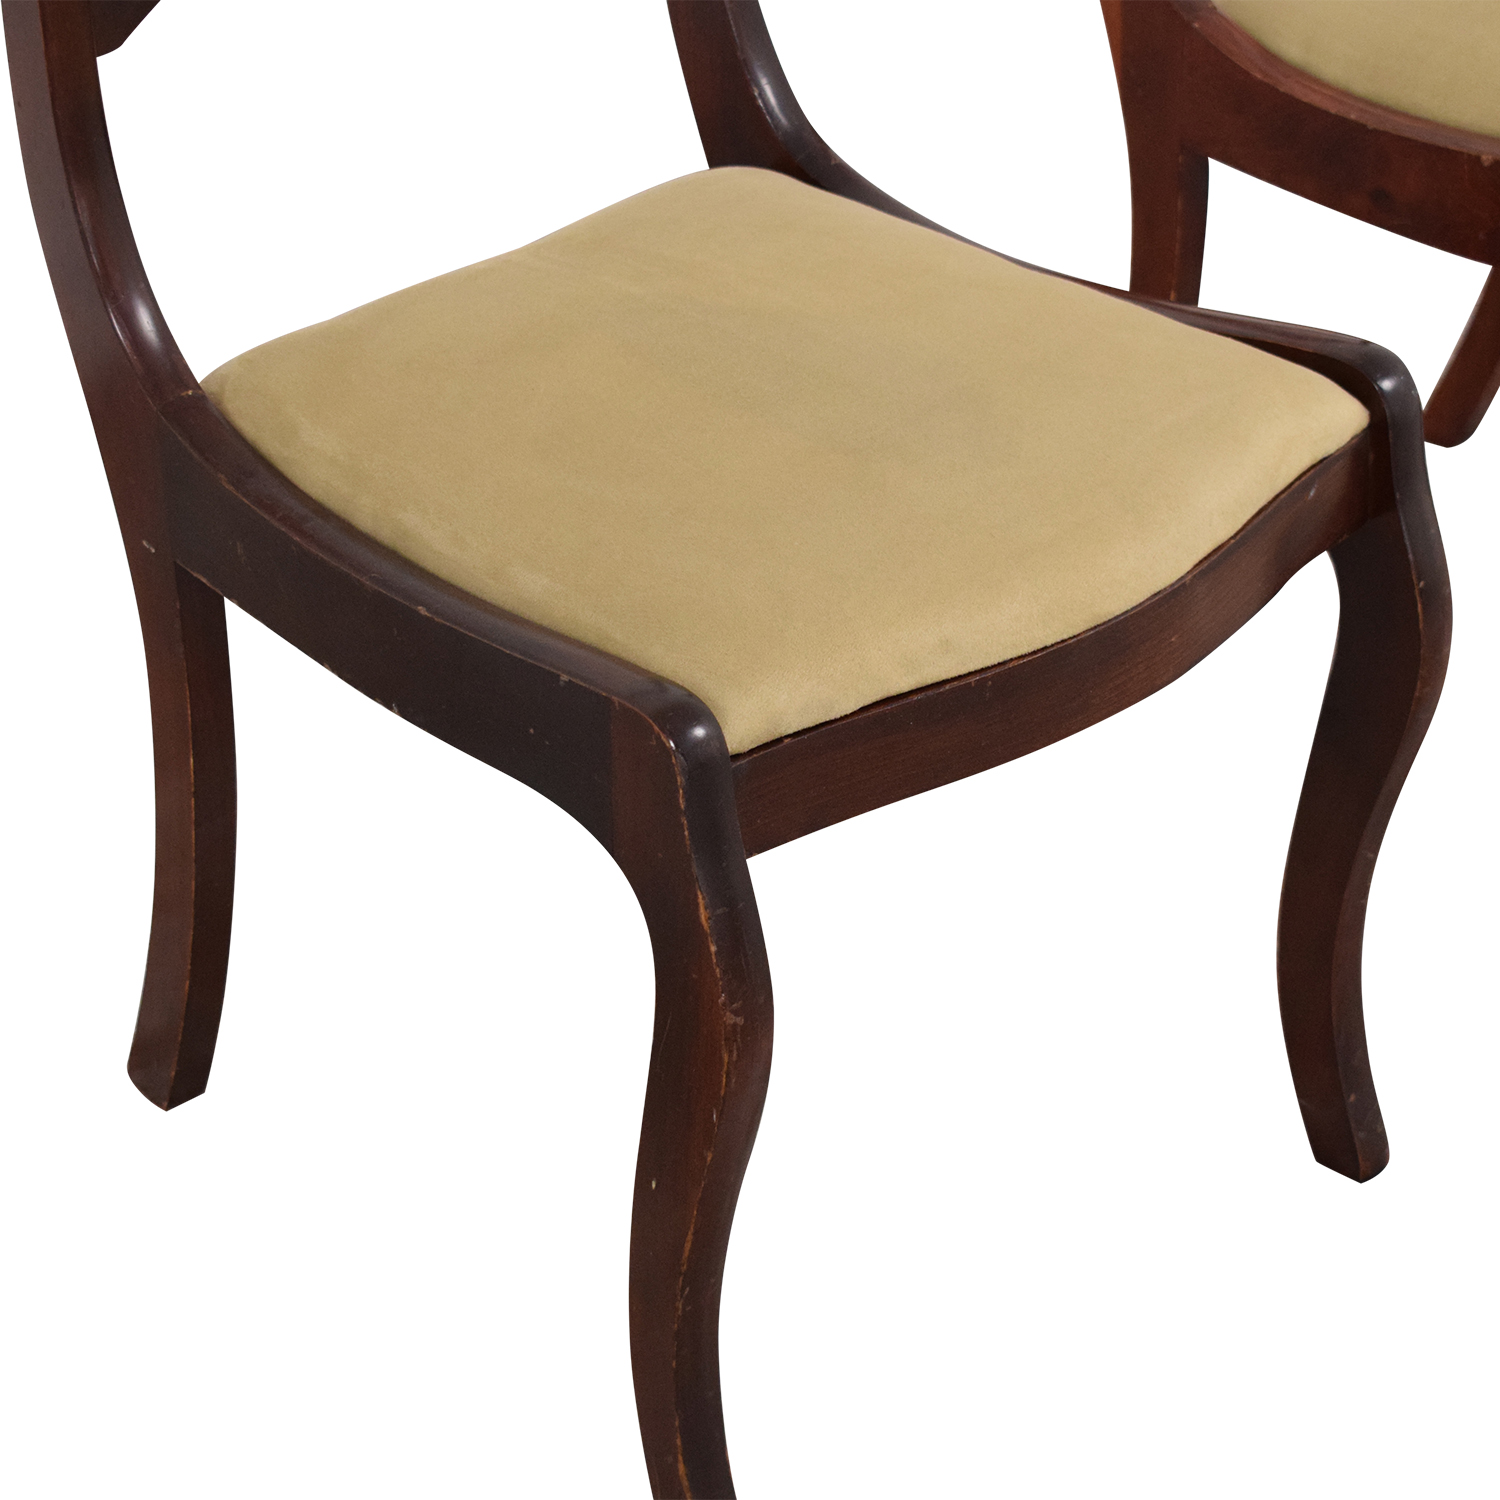 Vintage Upholstered Dining Chairs ct